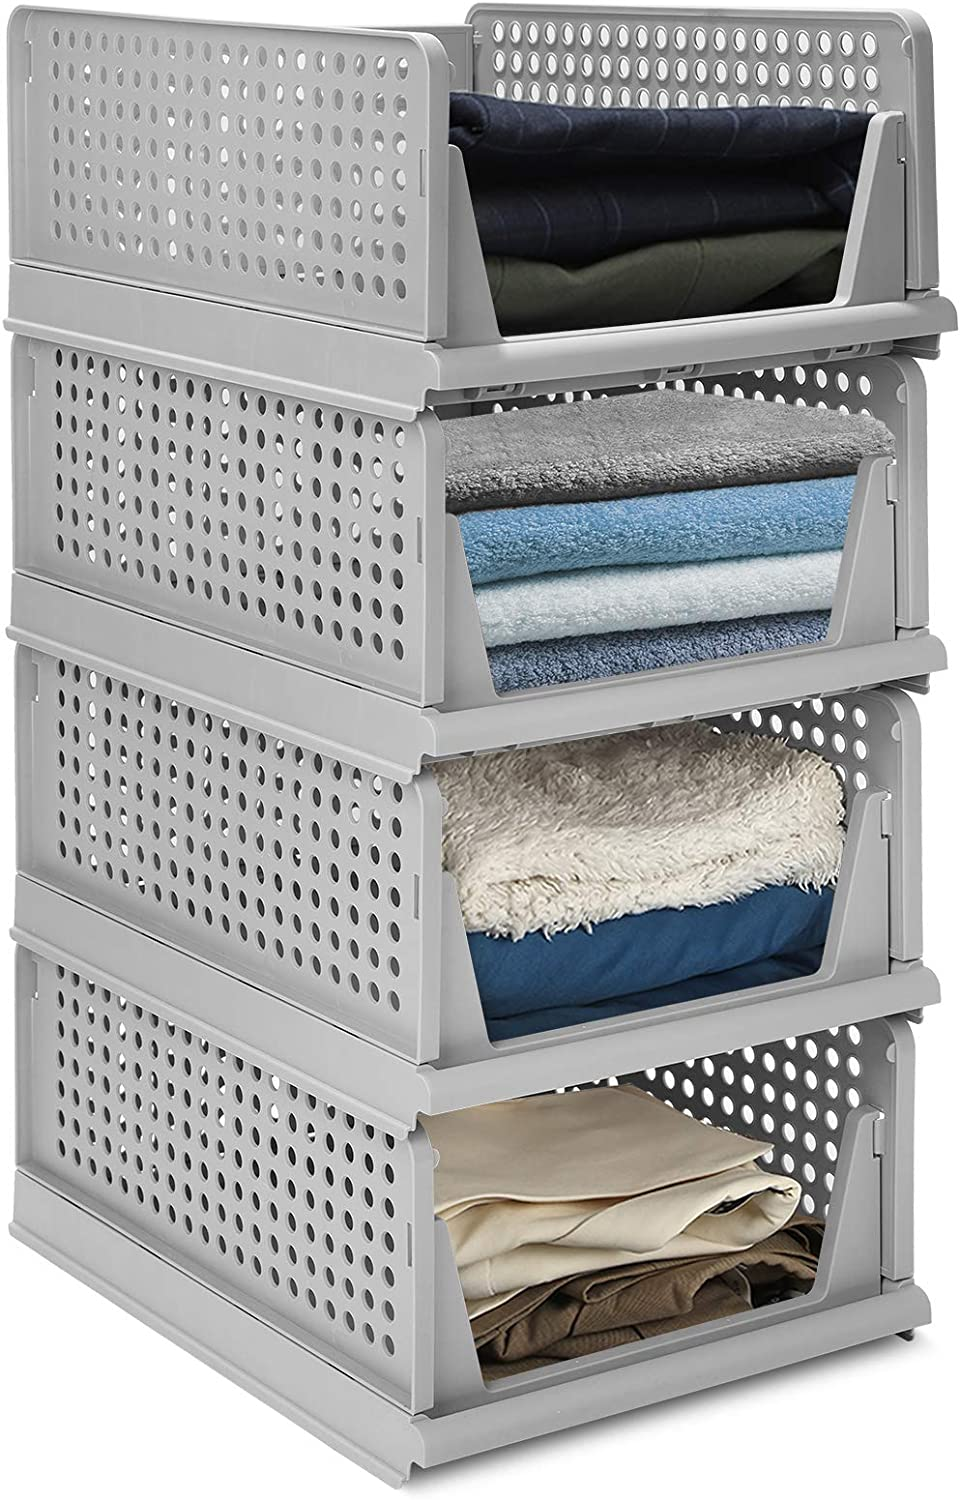 Gray Foldable Closet Organizers Storage Bins Perfect for Bedroom /& Kitchen Pull Out Like a Drawer Hossejoy Set of 4 Stackable Plastic Storage Basket